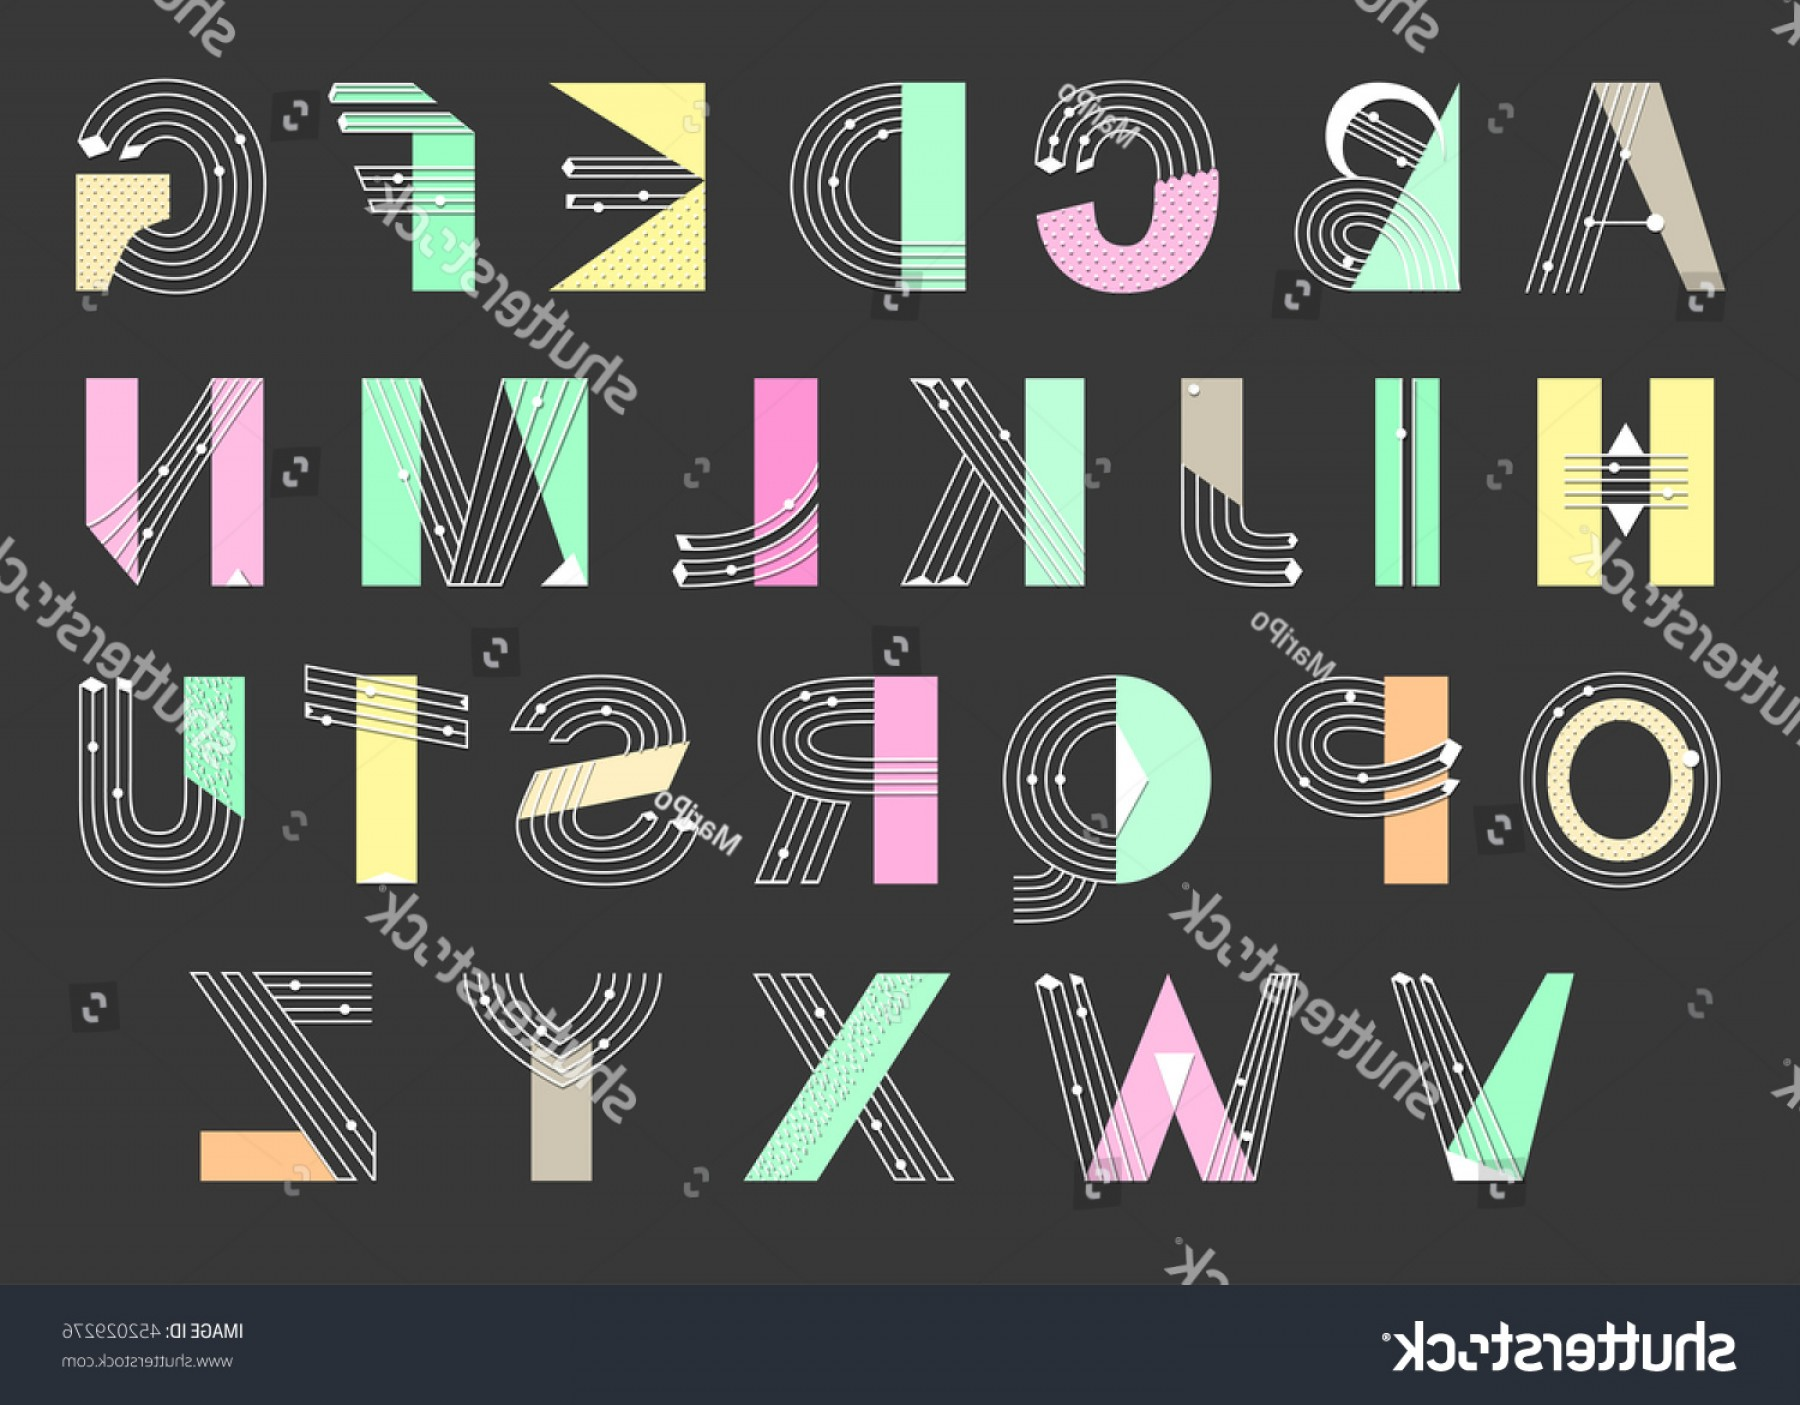 Decorative Font Vector Illustration: Creative Geometric Alphabet Postmodernist Design Typeface